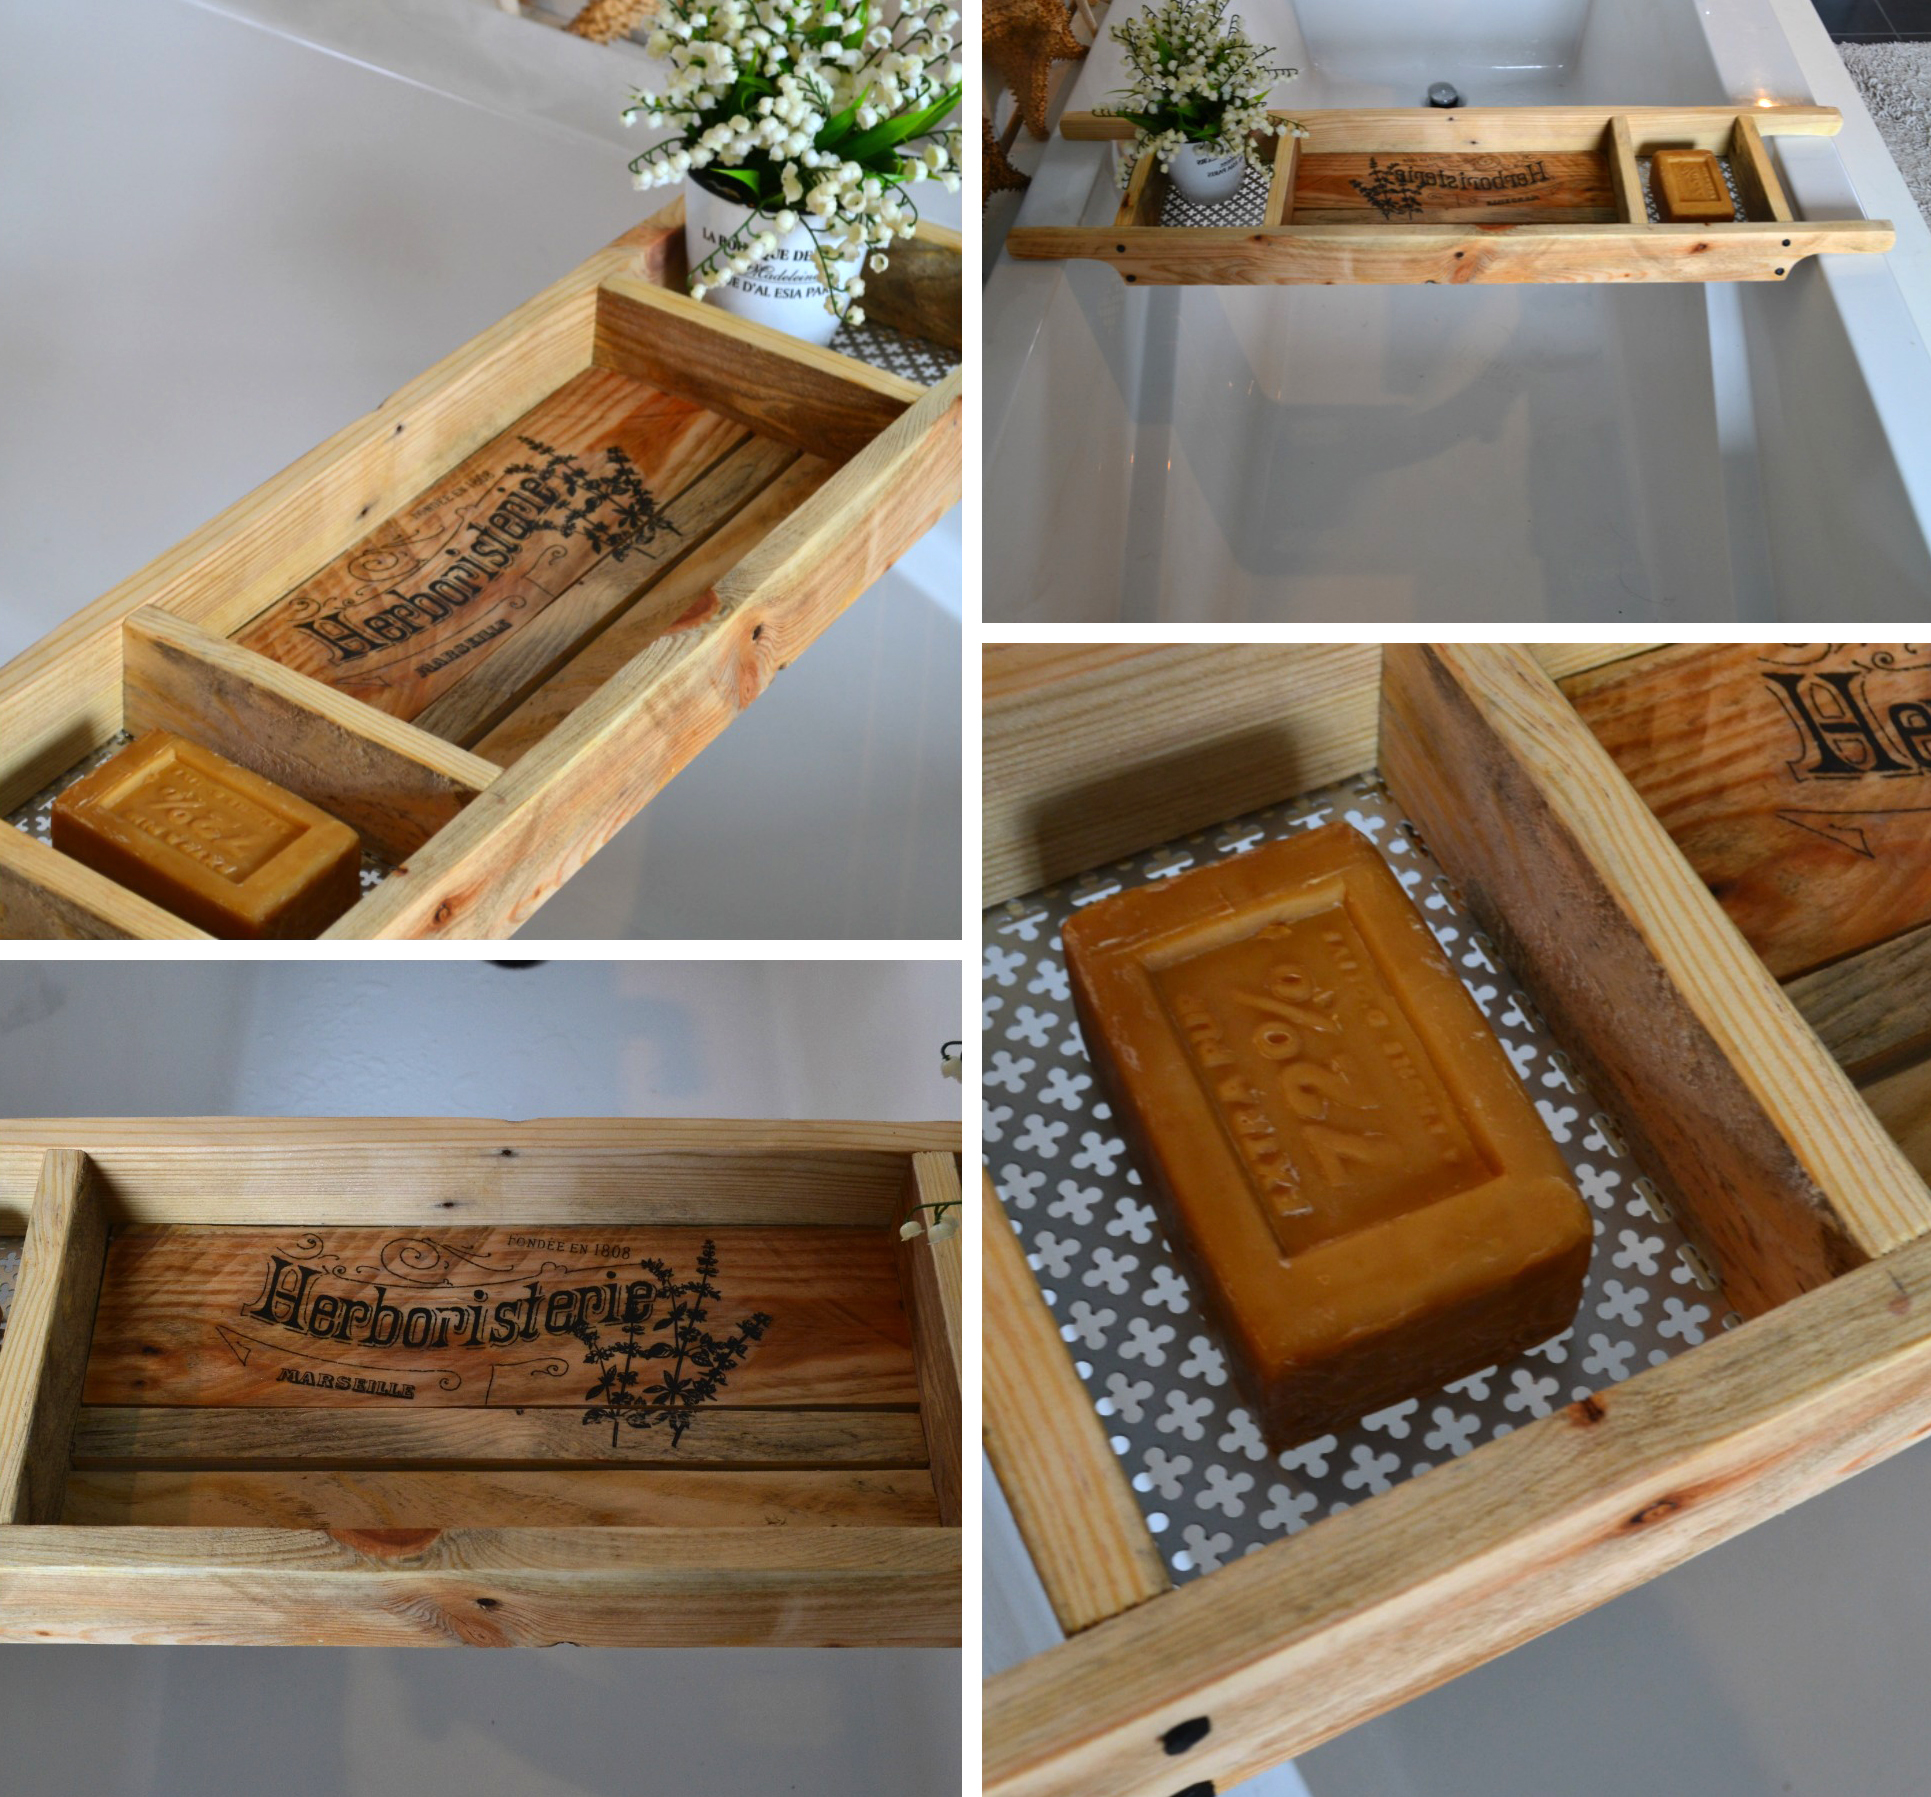 Recycled Wood Bath Tray - Reader Feature - The Graphics Fairy